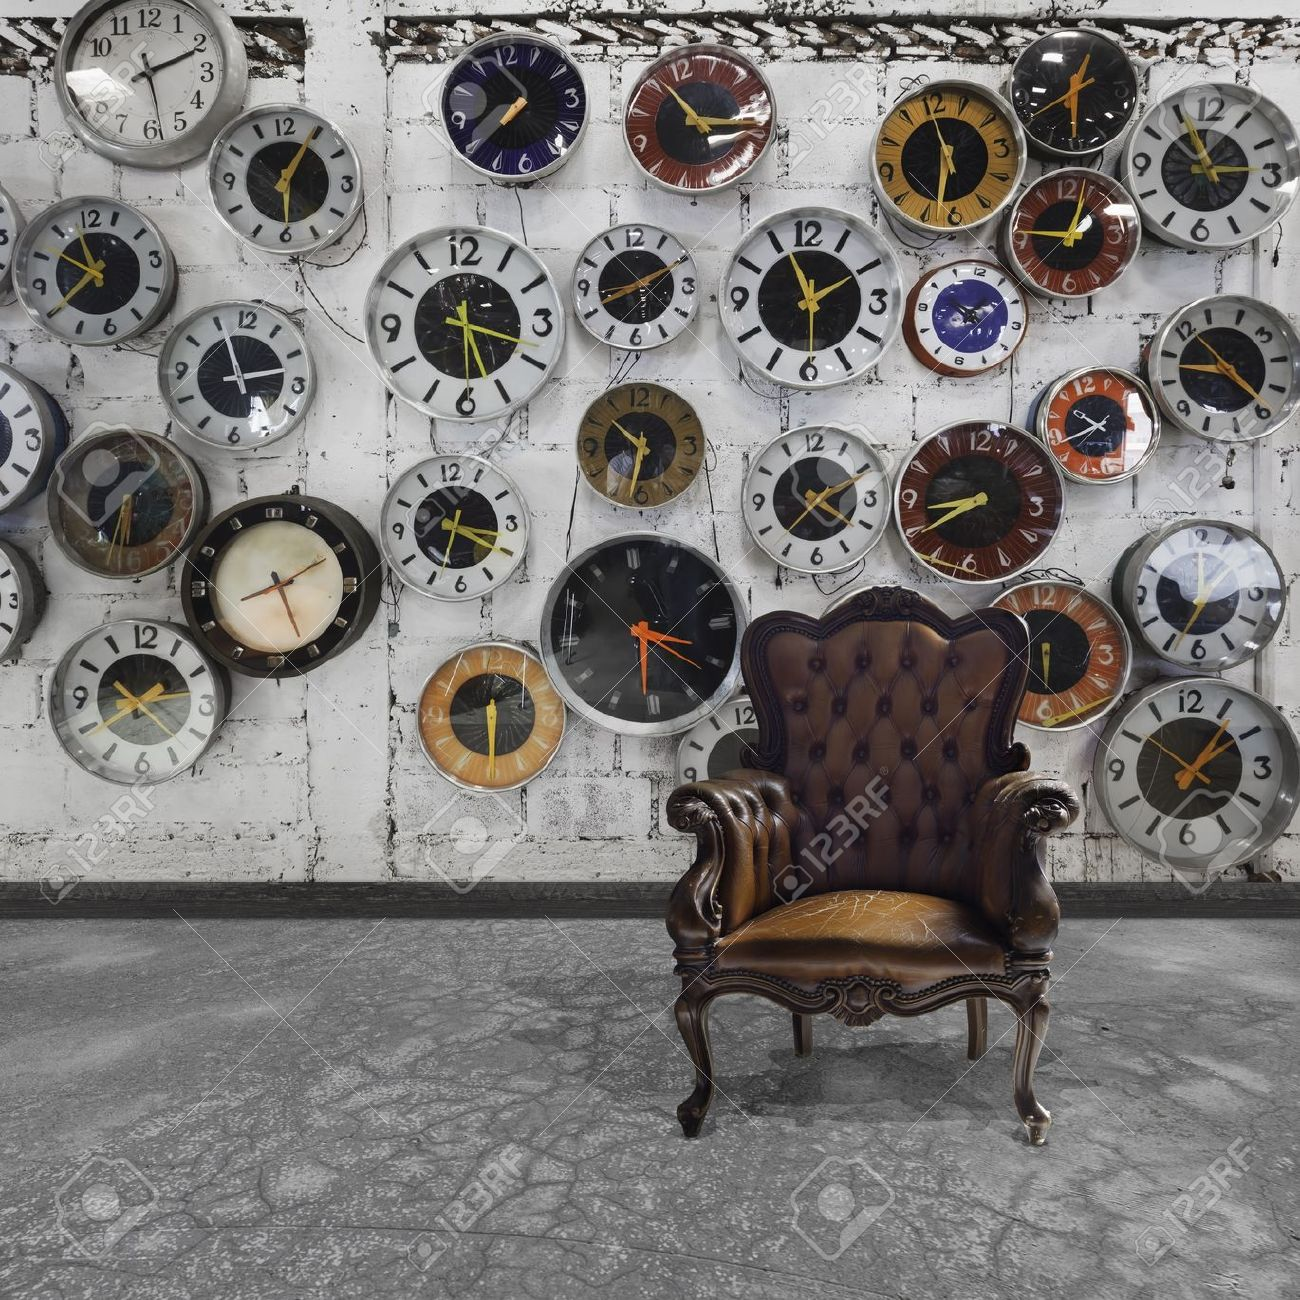 Retro Room With Clocks Decorated On The Wall Stock Photo